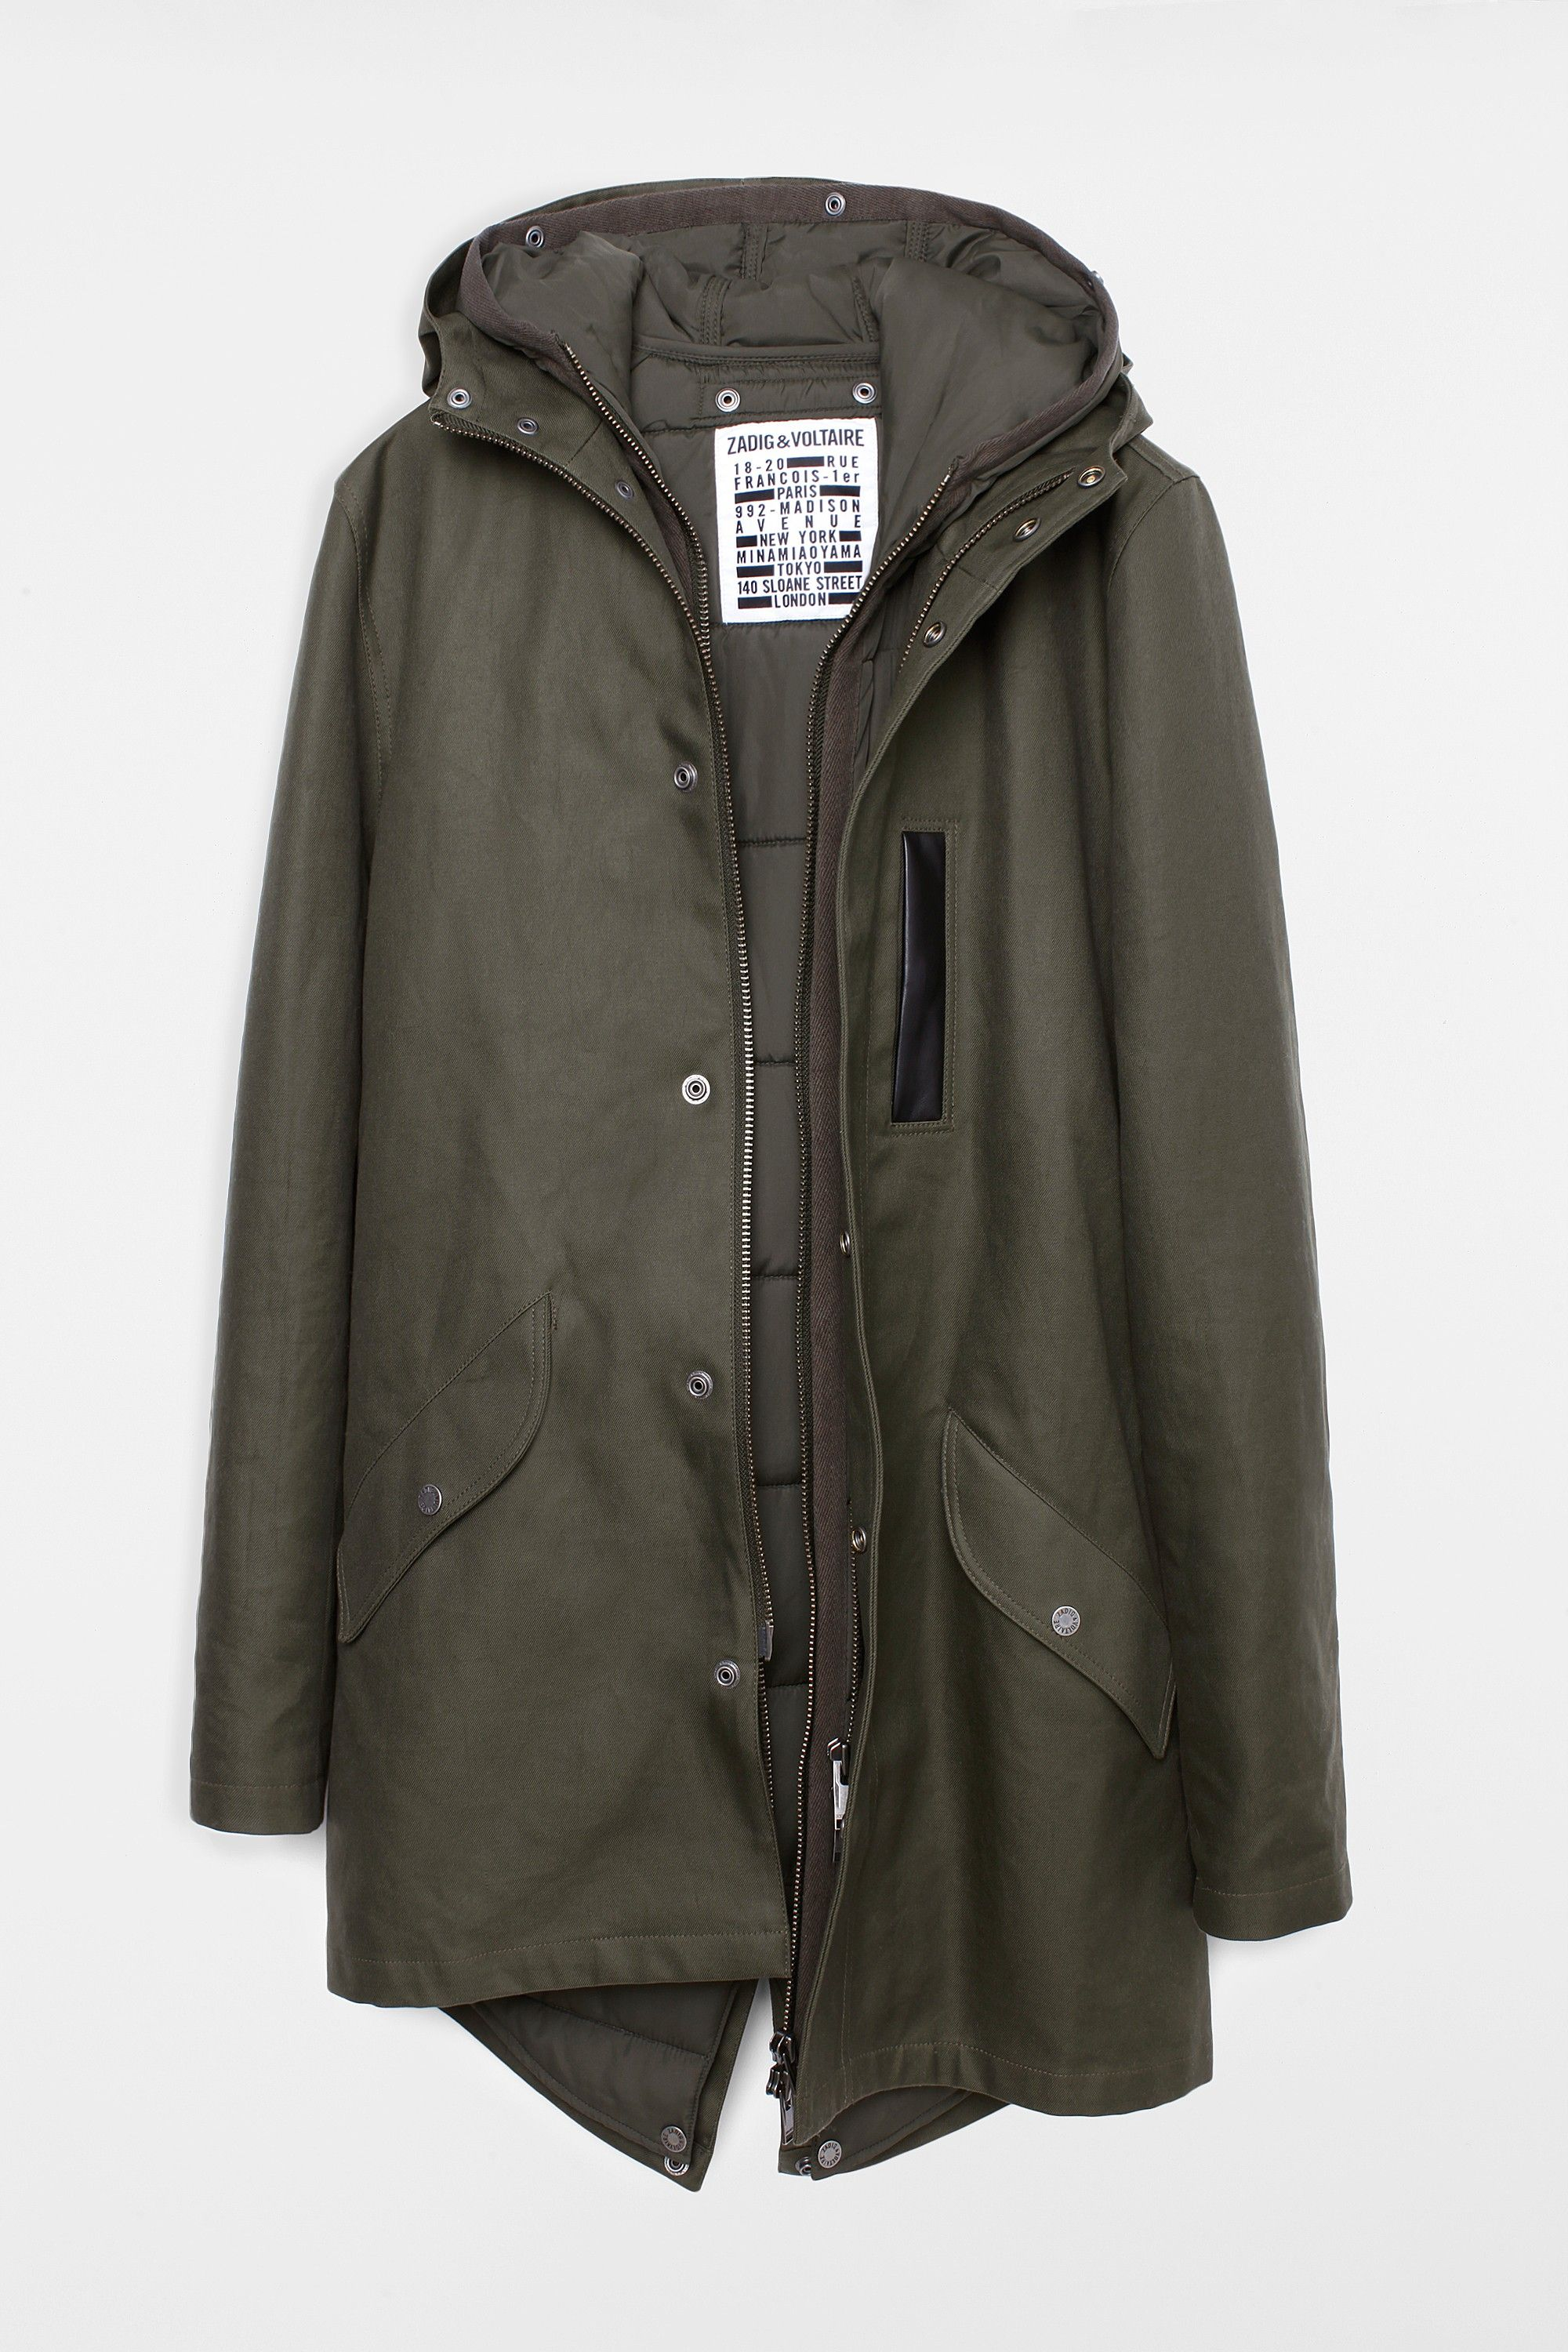 Kart Amo Men Parka, khaki, Zadig & Voltaire | fashion | Pinterest ...